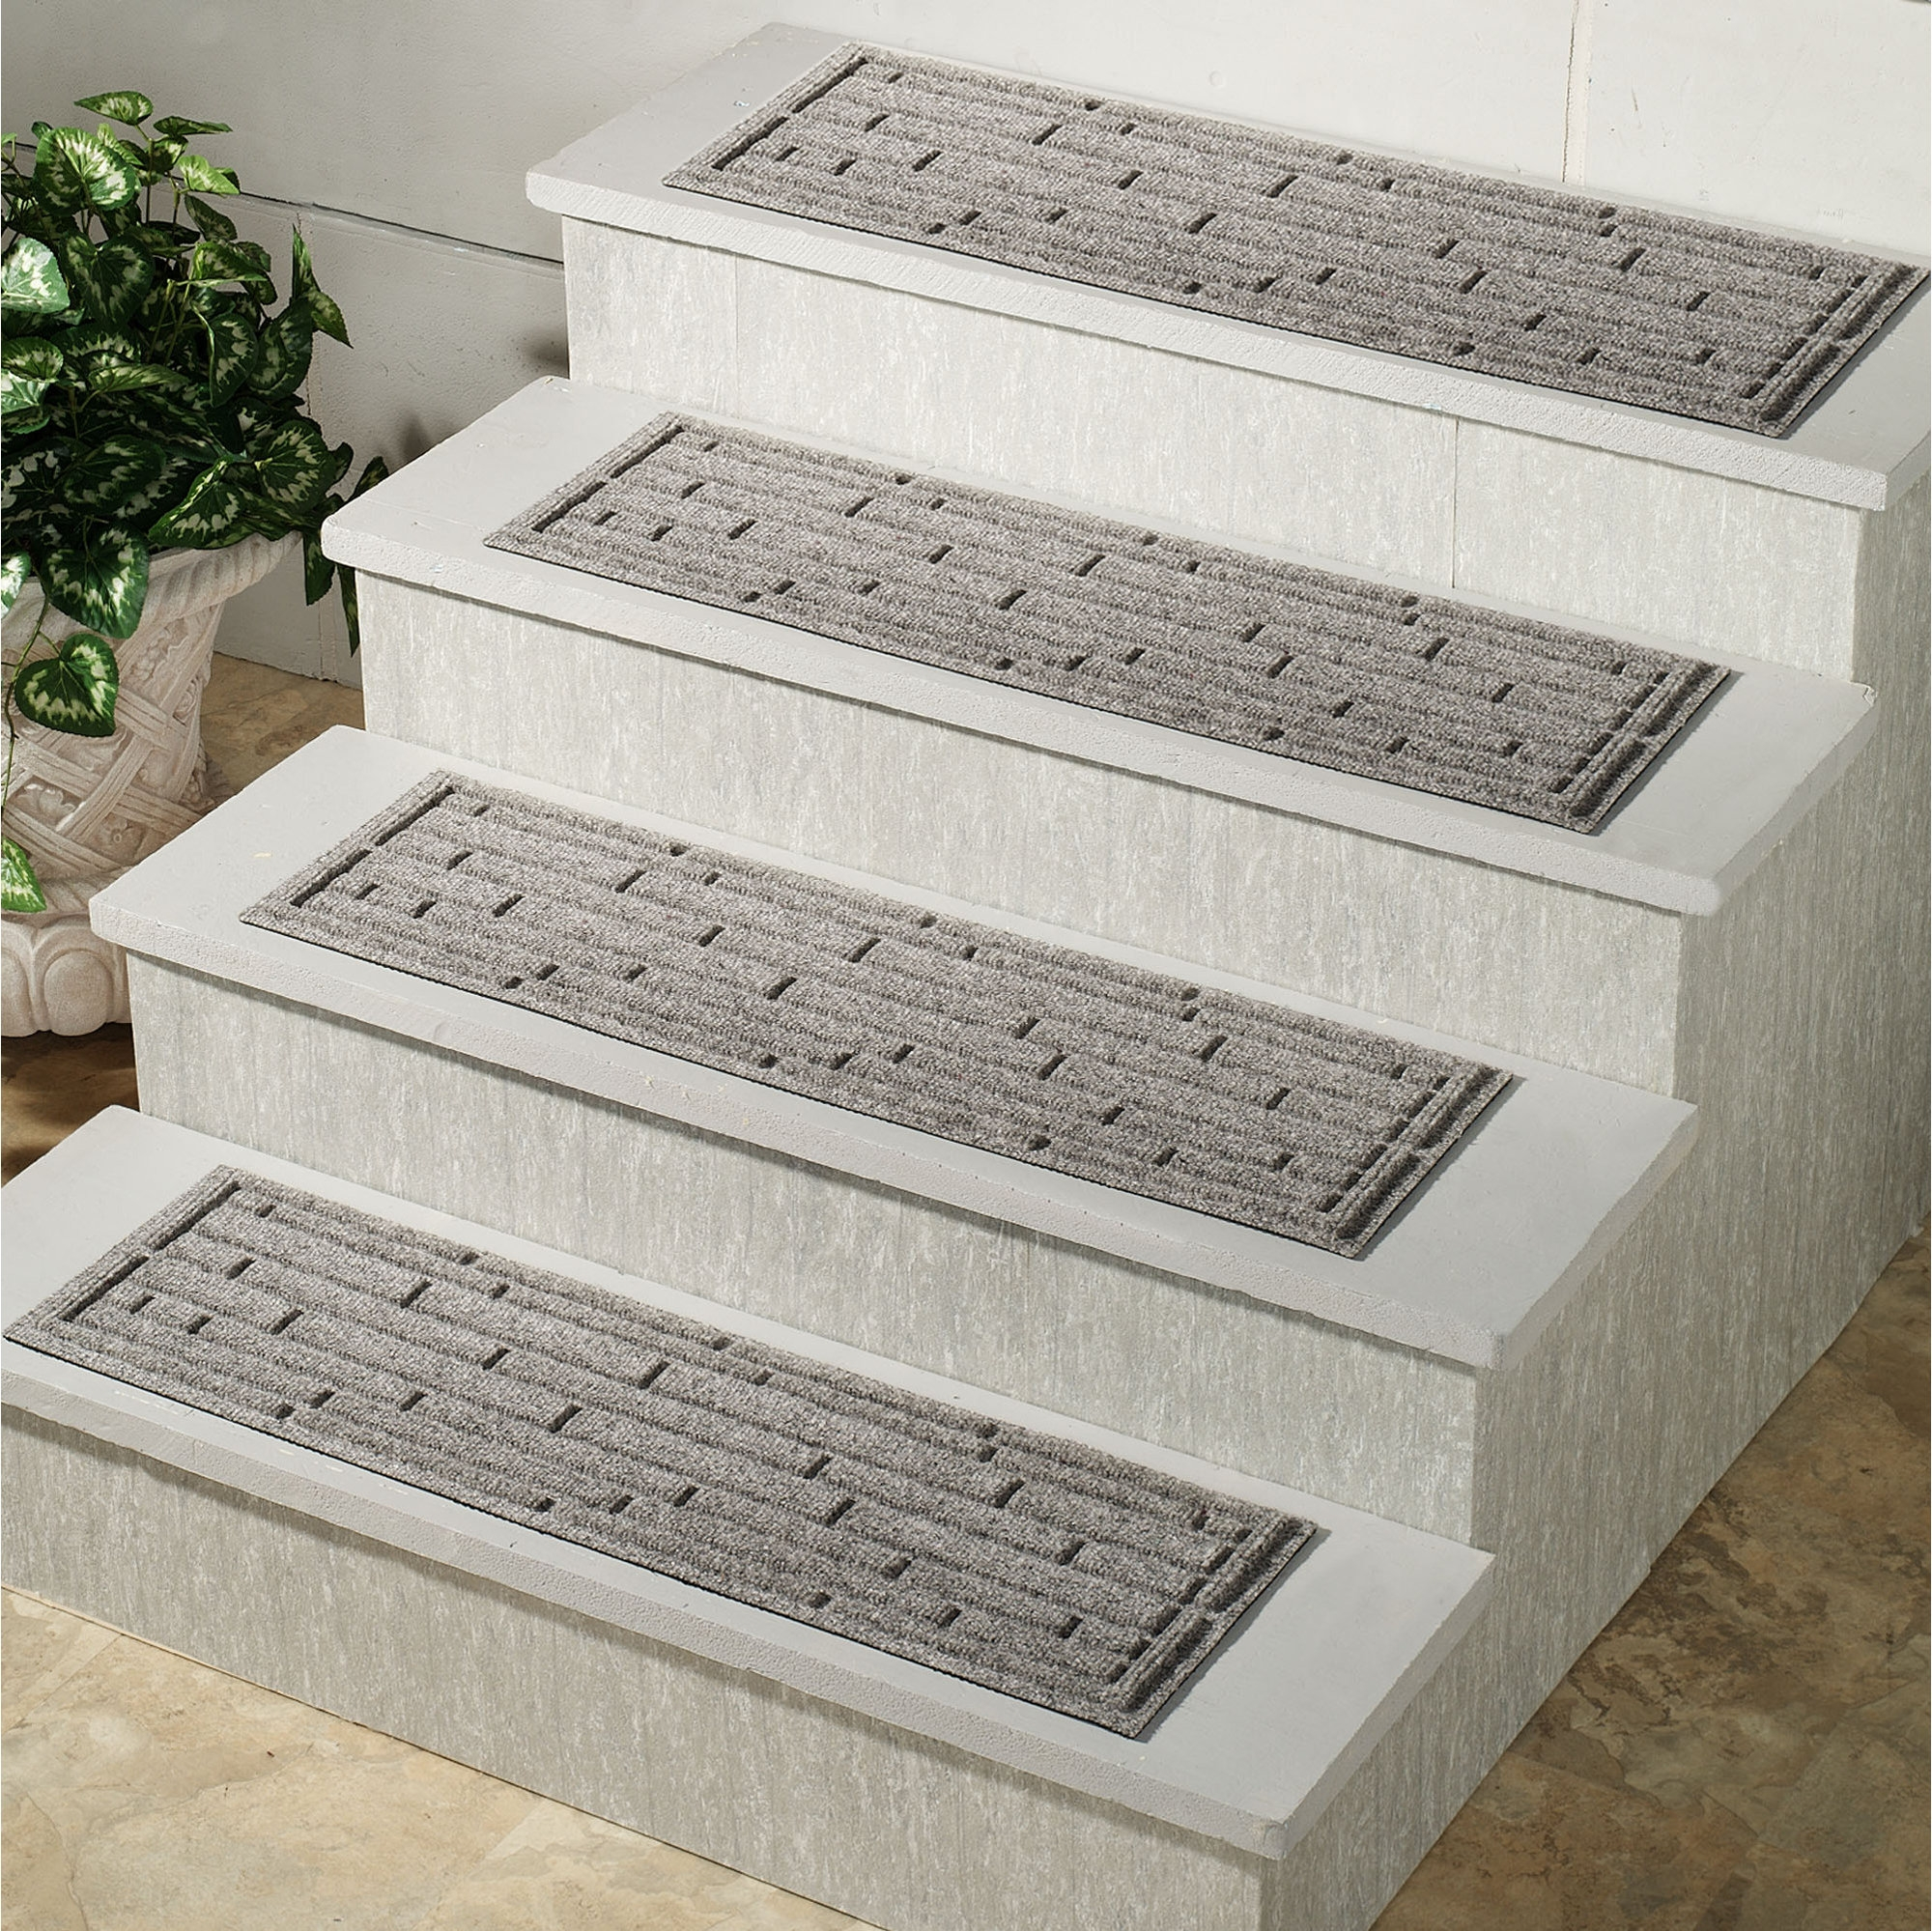 stair treads decorative rubber stair design ideas with regard to decorative stair treads 19